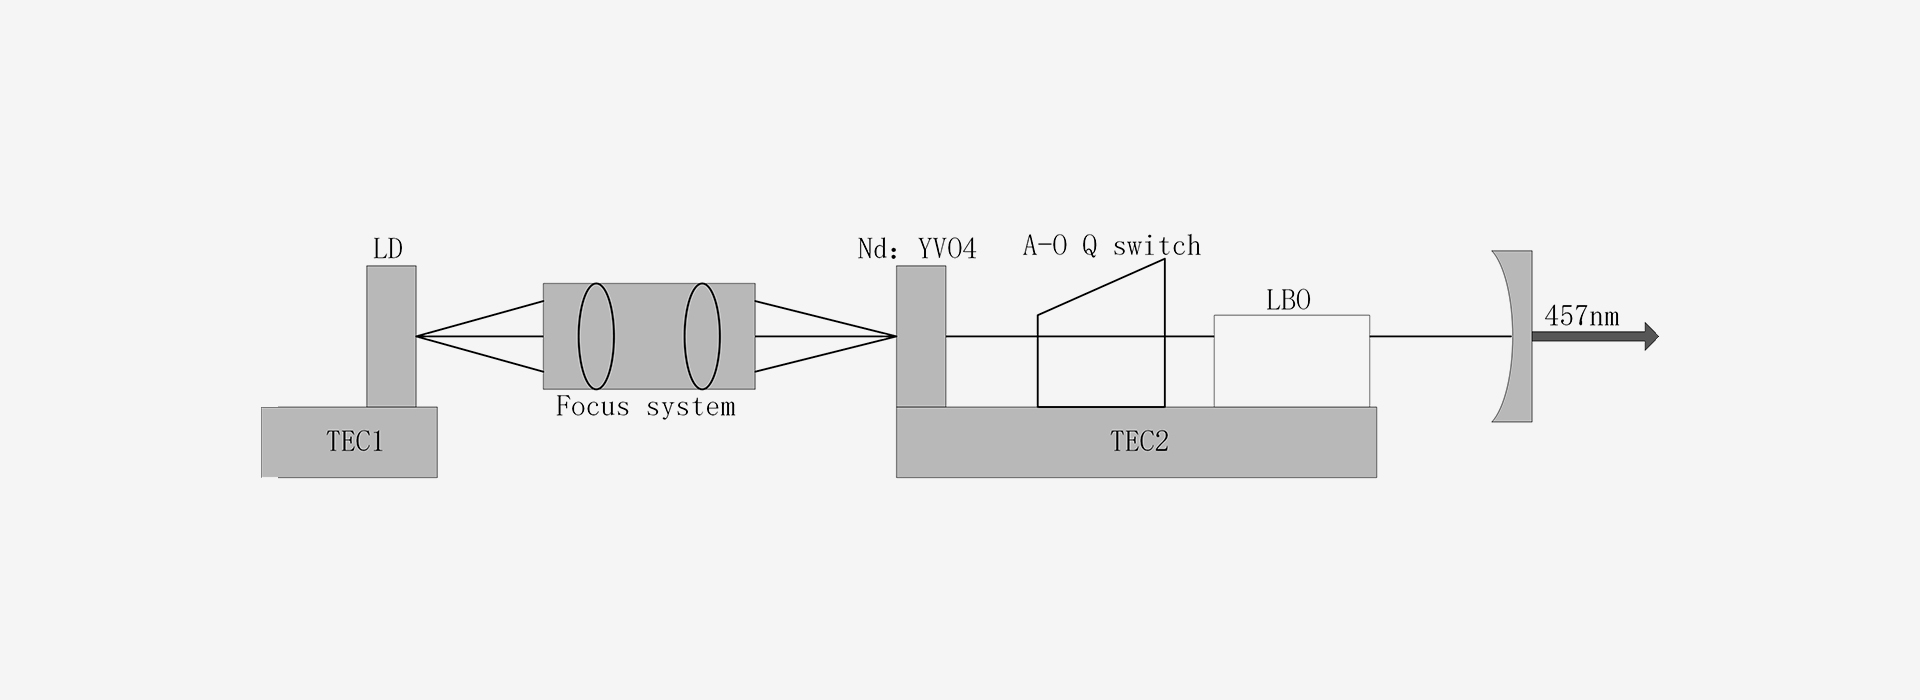 457nm Nd:YVO4 Laser For Optical Communication